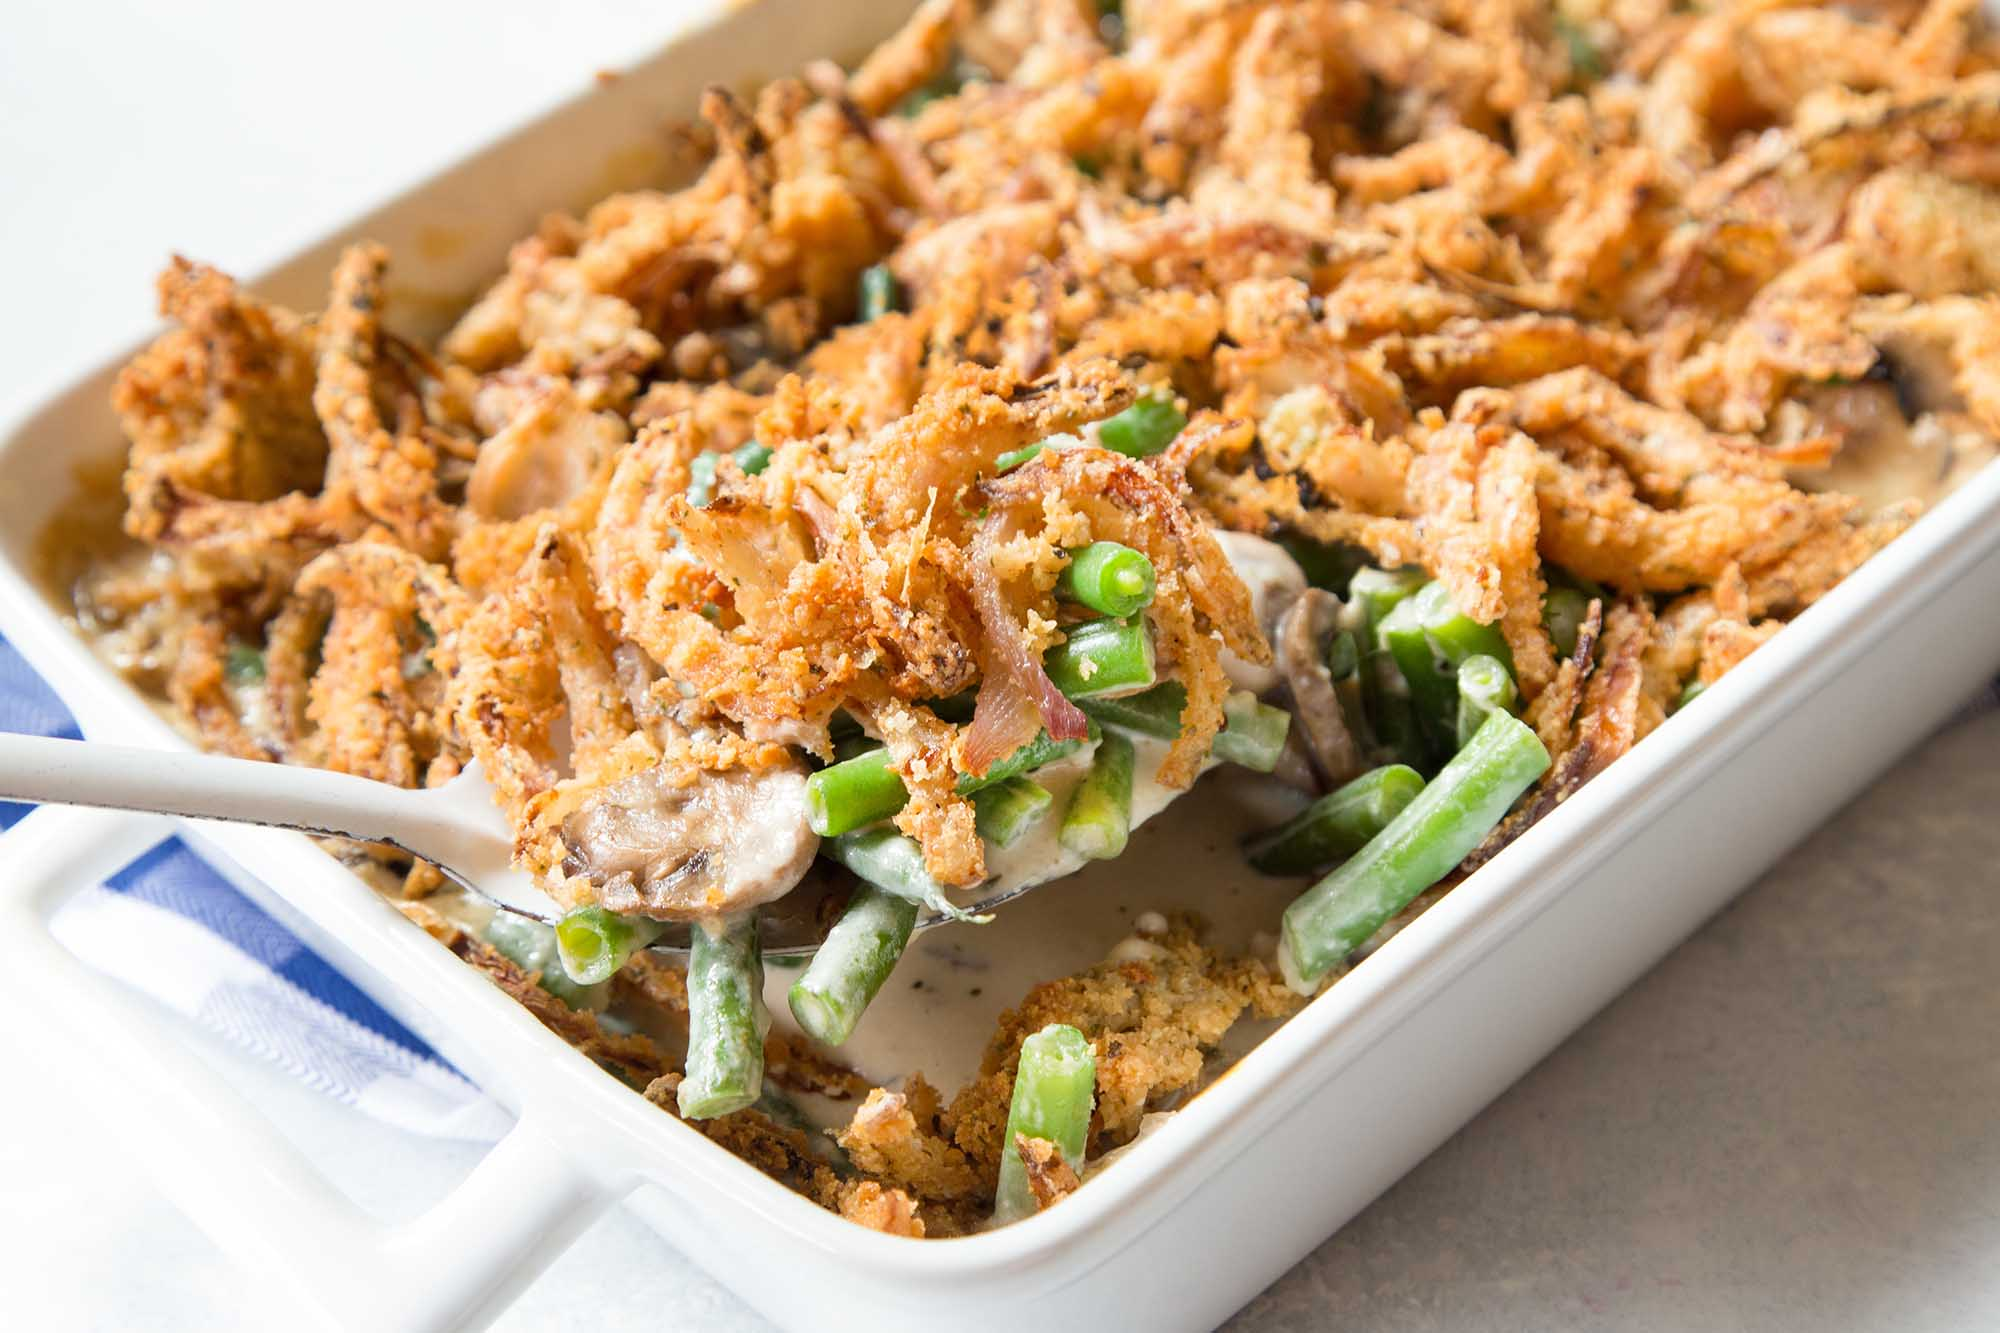 Green bean casserole with fried onions on top. A must have for Thanksgiving.